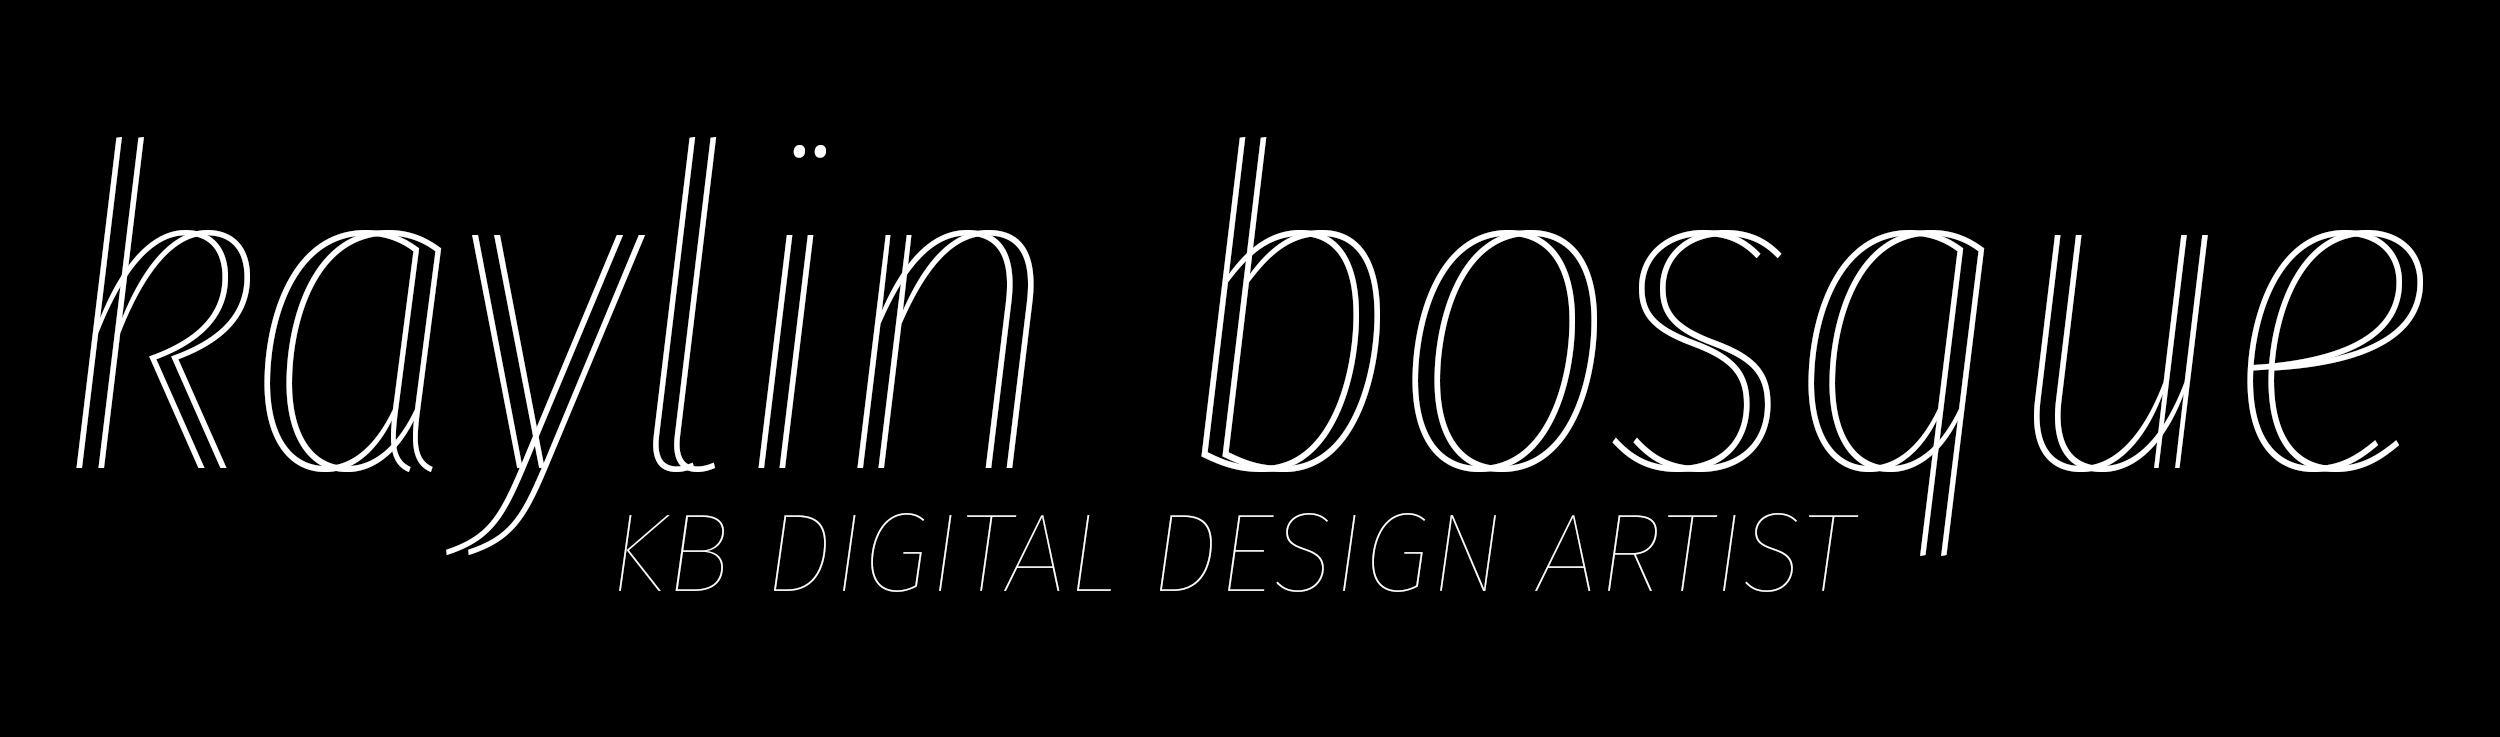 kb digital design's Signature